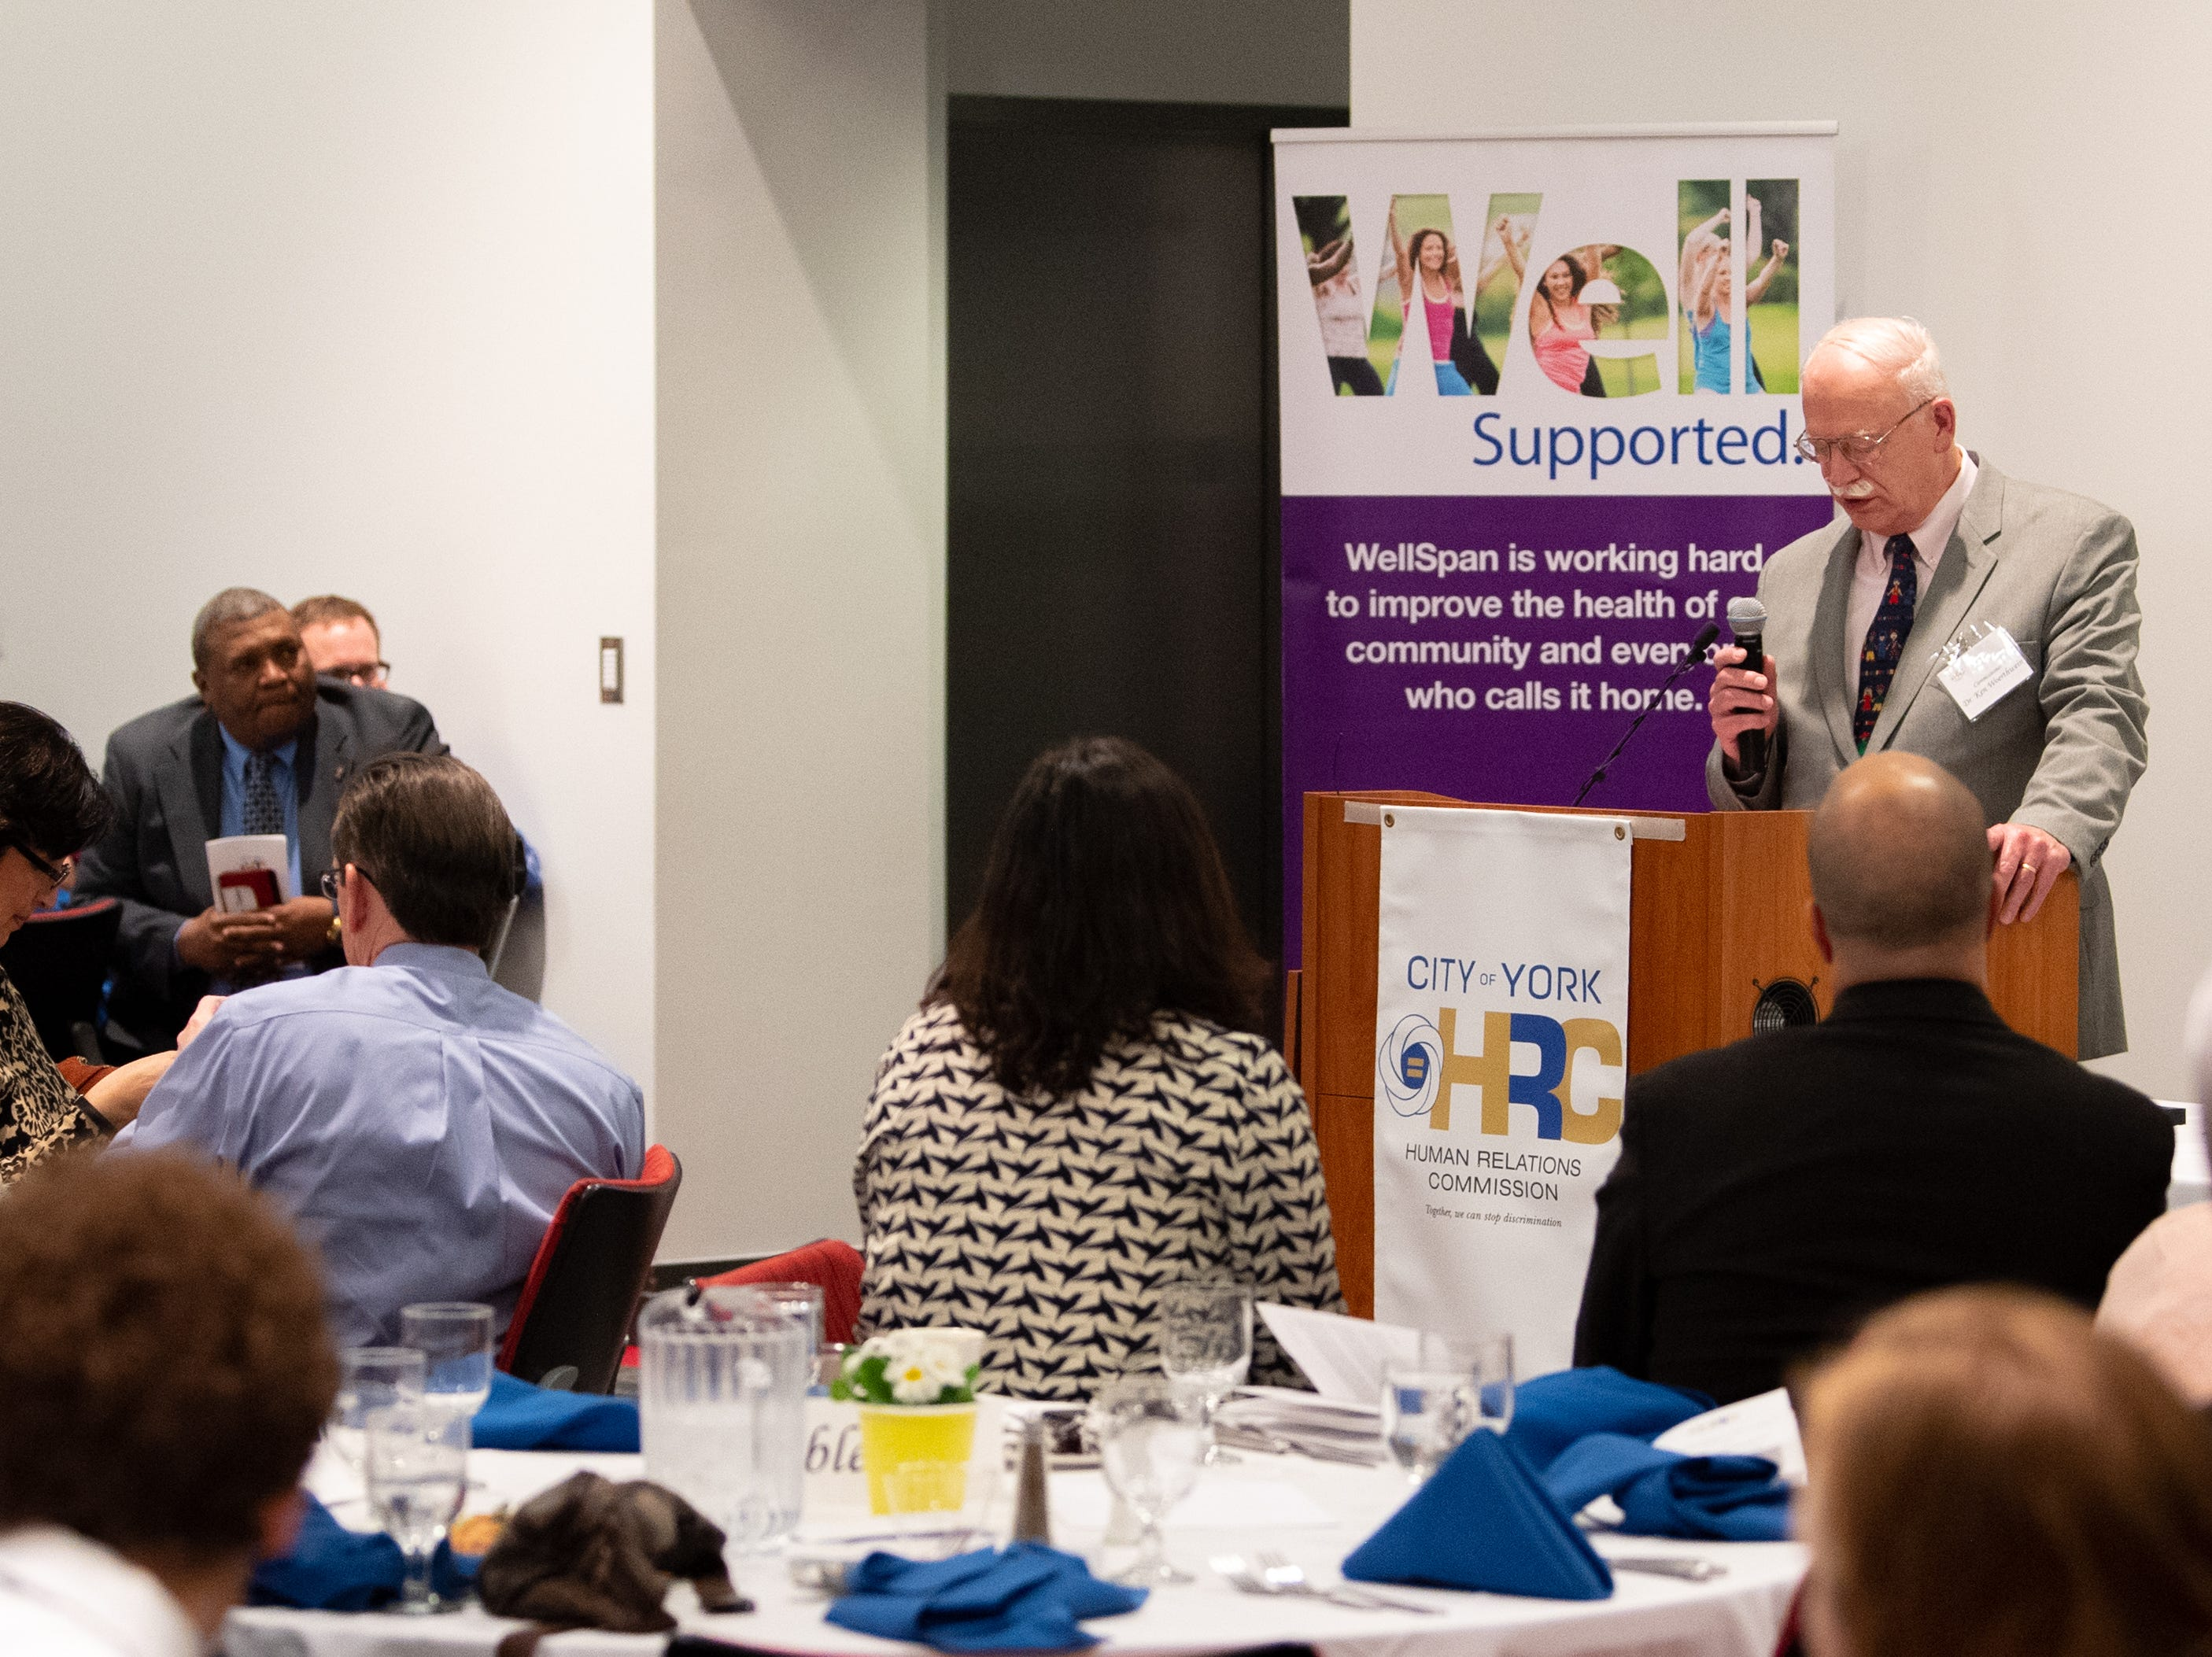 Legacy Award winner Dr. Kenneth Woerthwein addresses the crowd about his wife and fellow award winner during the 2019 City of York Human Relations Commission Diversity Dinner at York College, January 9, 2019.